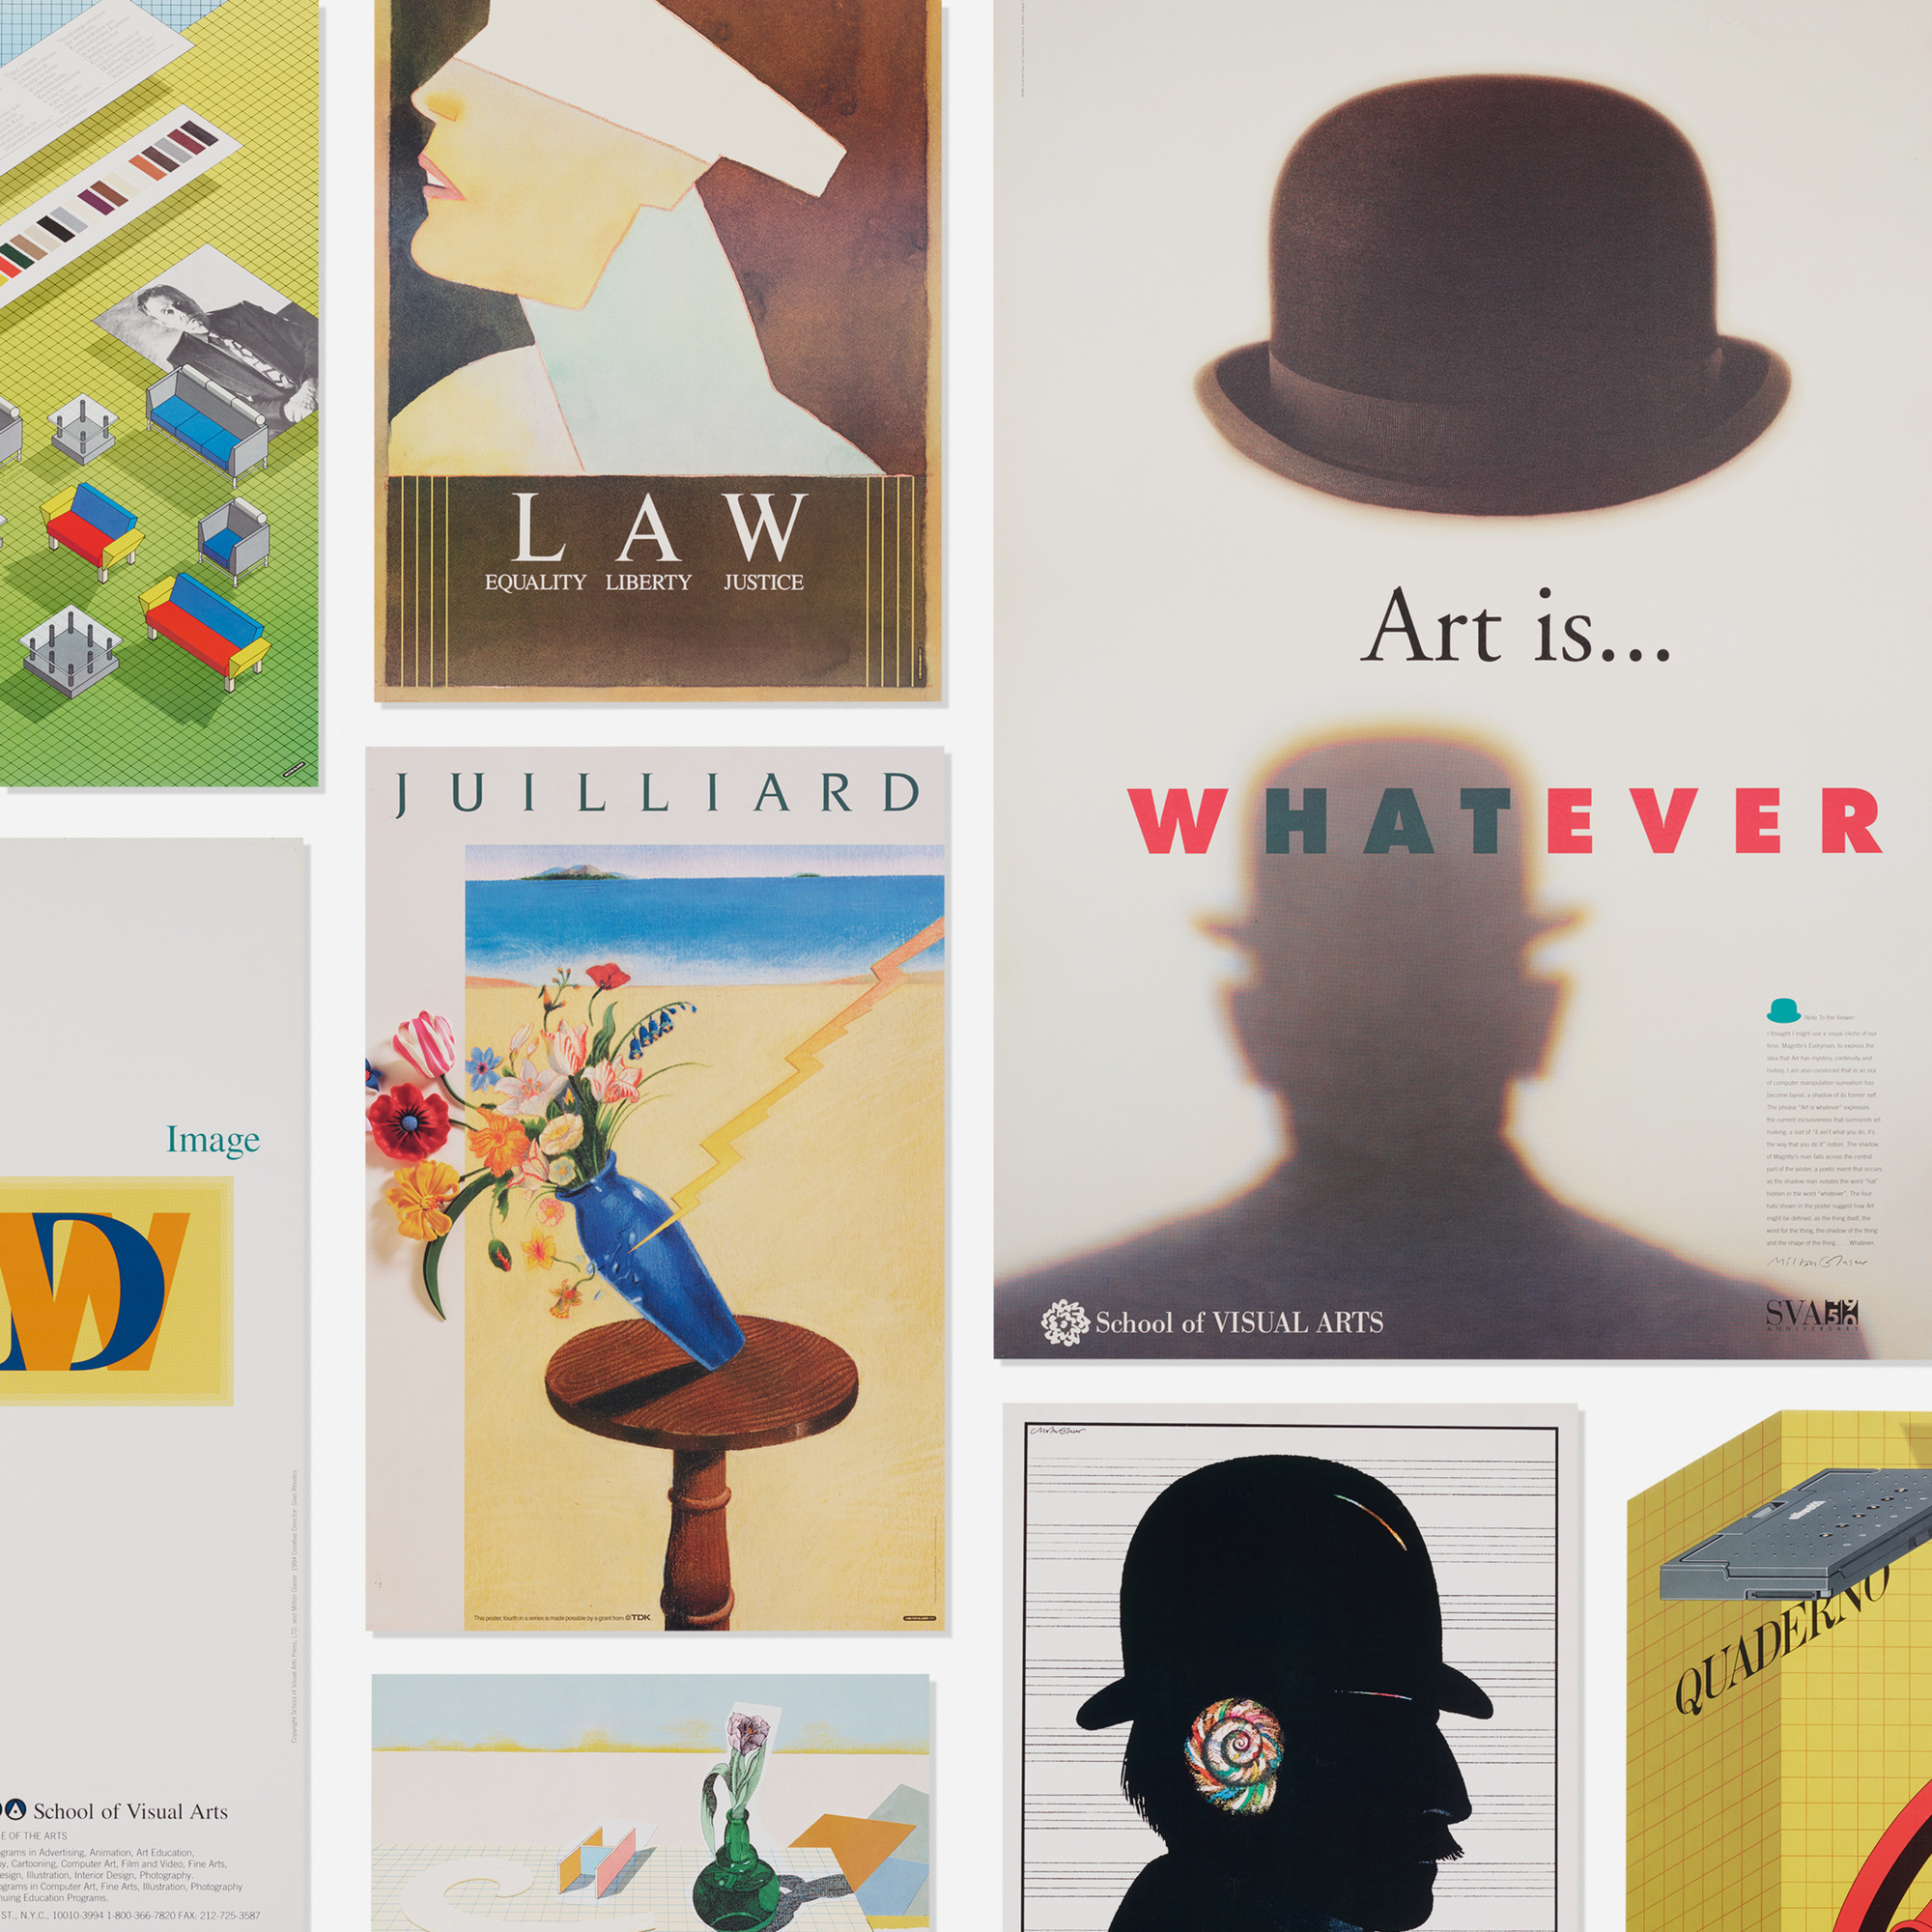 333: Milton Glaser / collection of twenty-five posters (1 of 1)